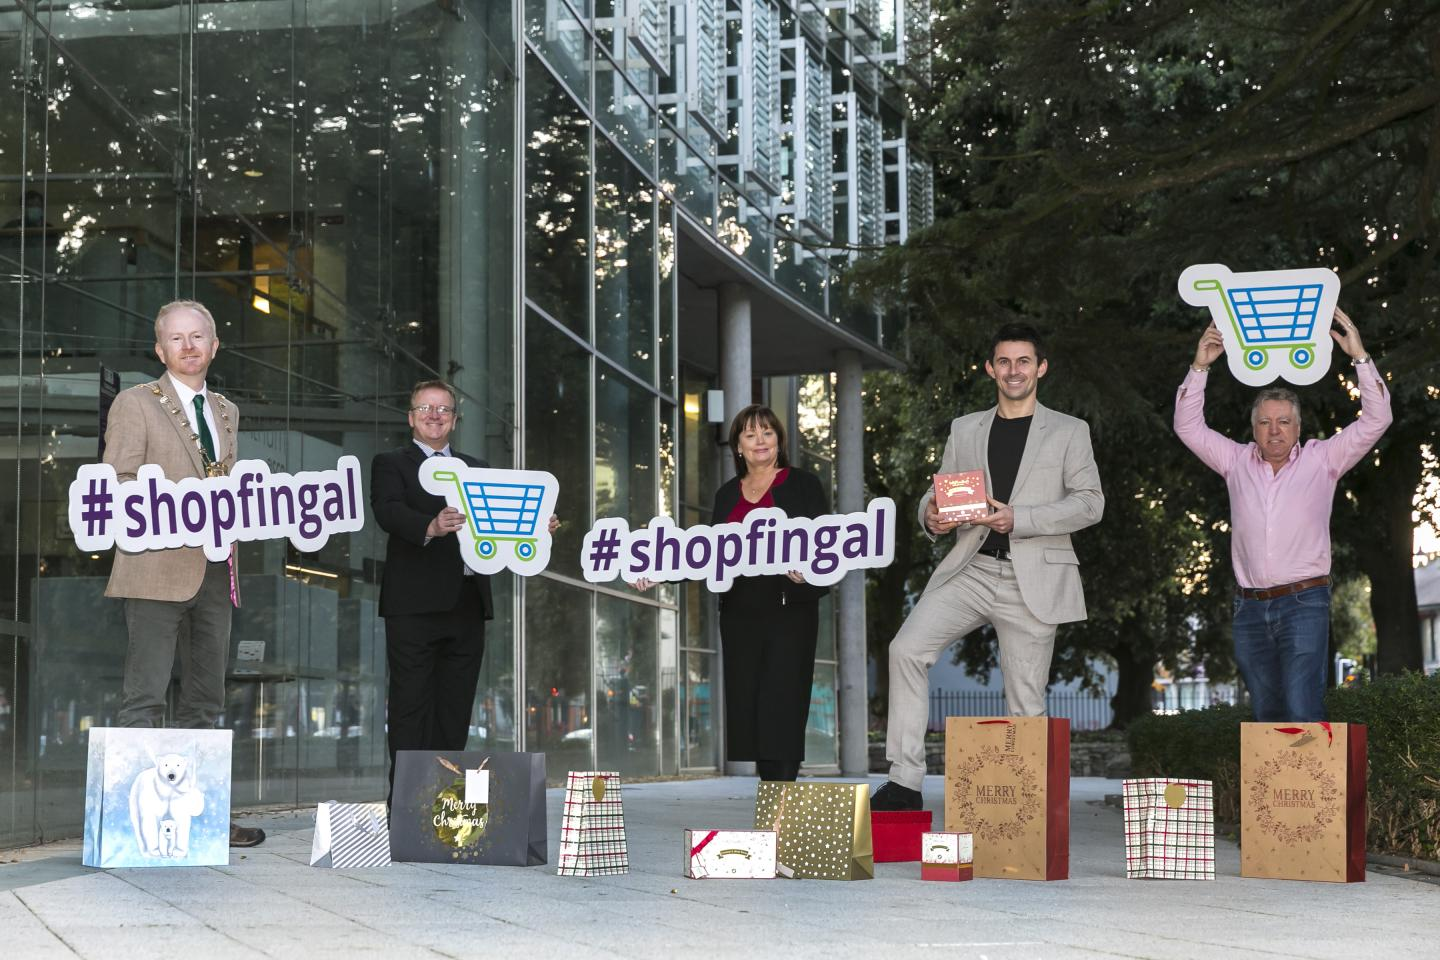 Shop Fingal LEO campaign